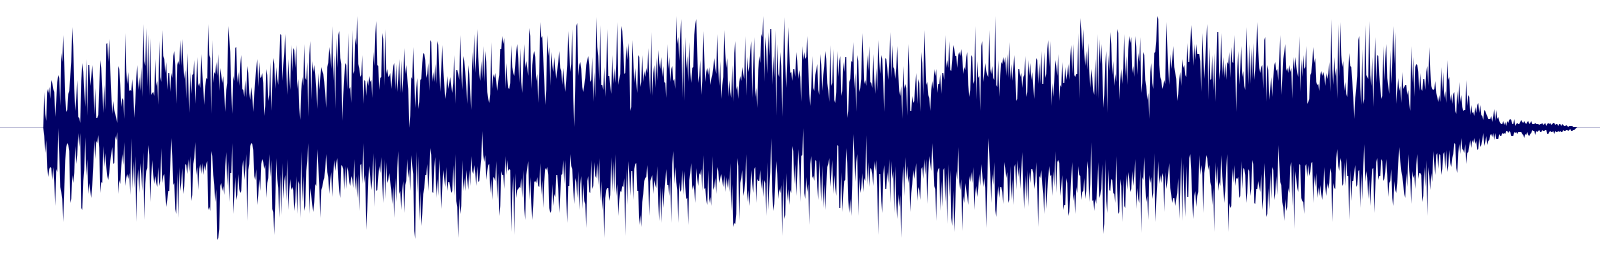 waveform of track #129896